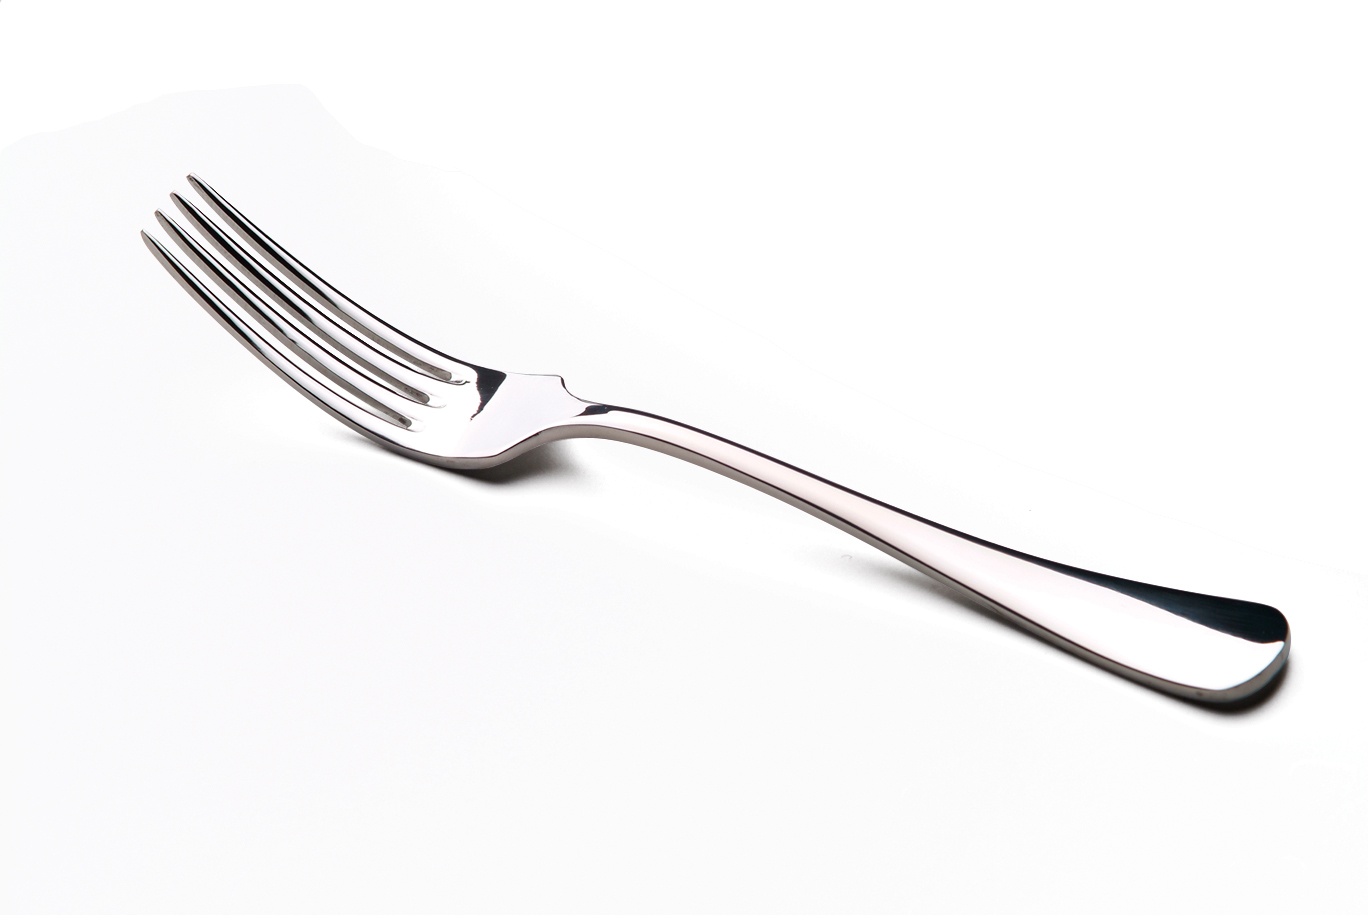 Plain Fork Utensils